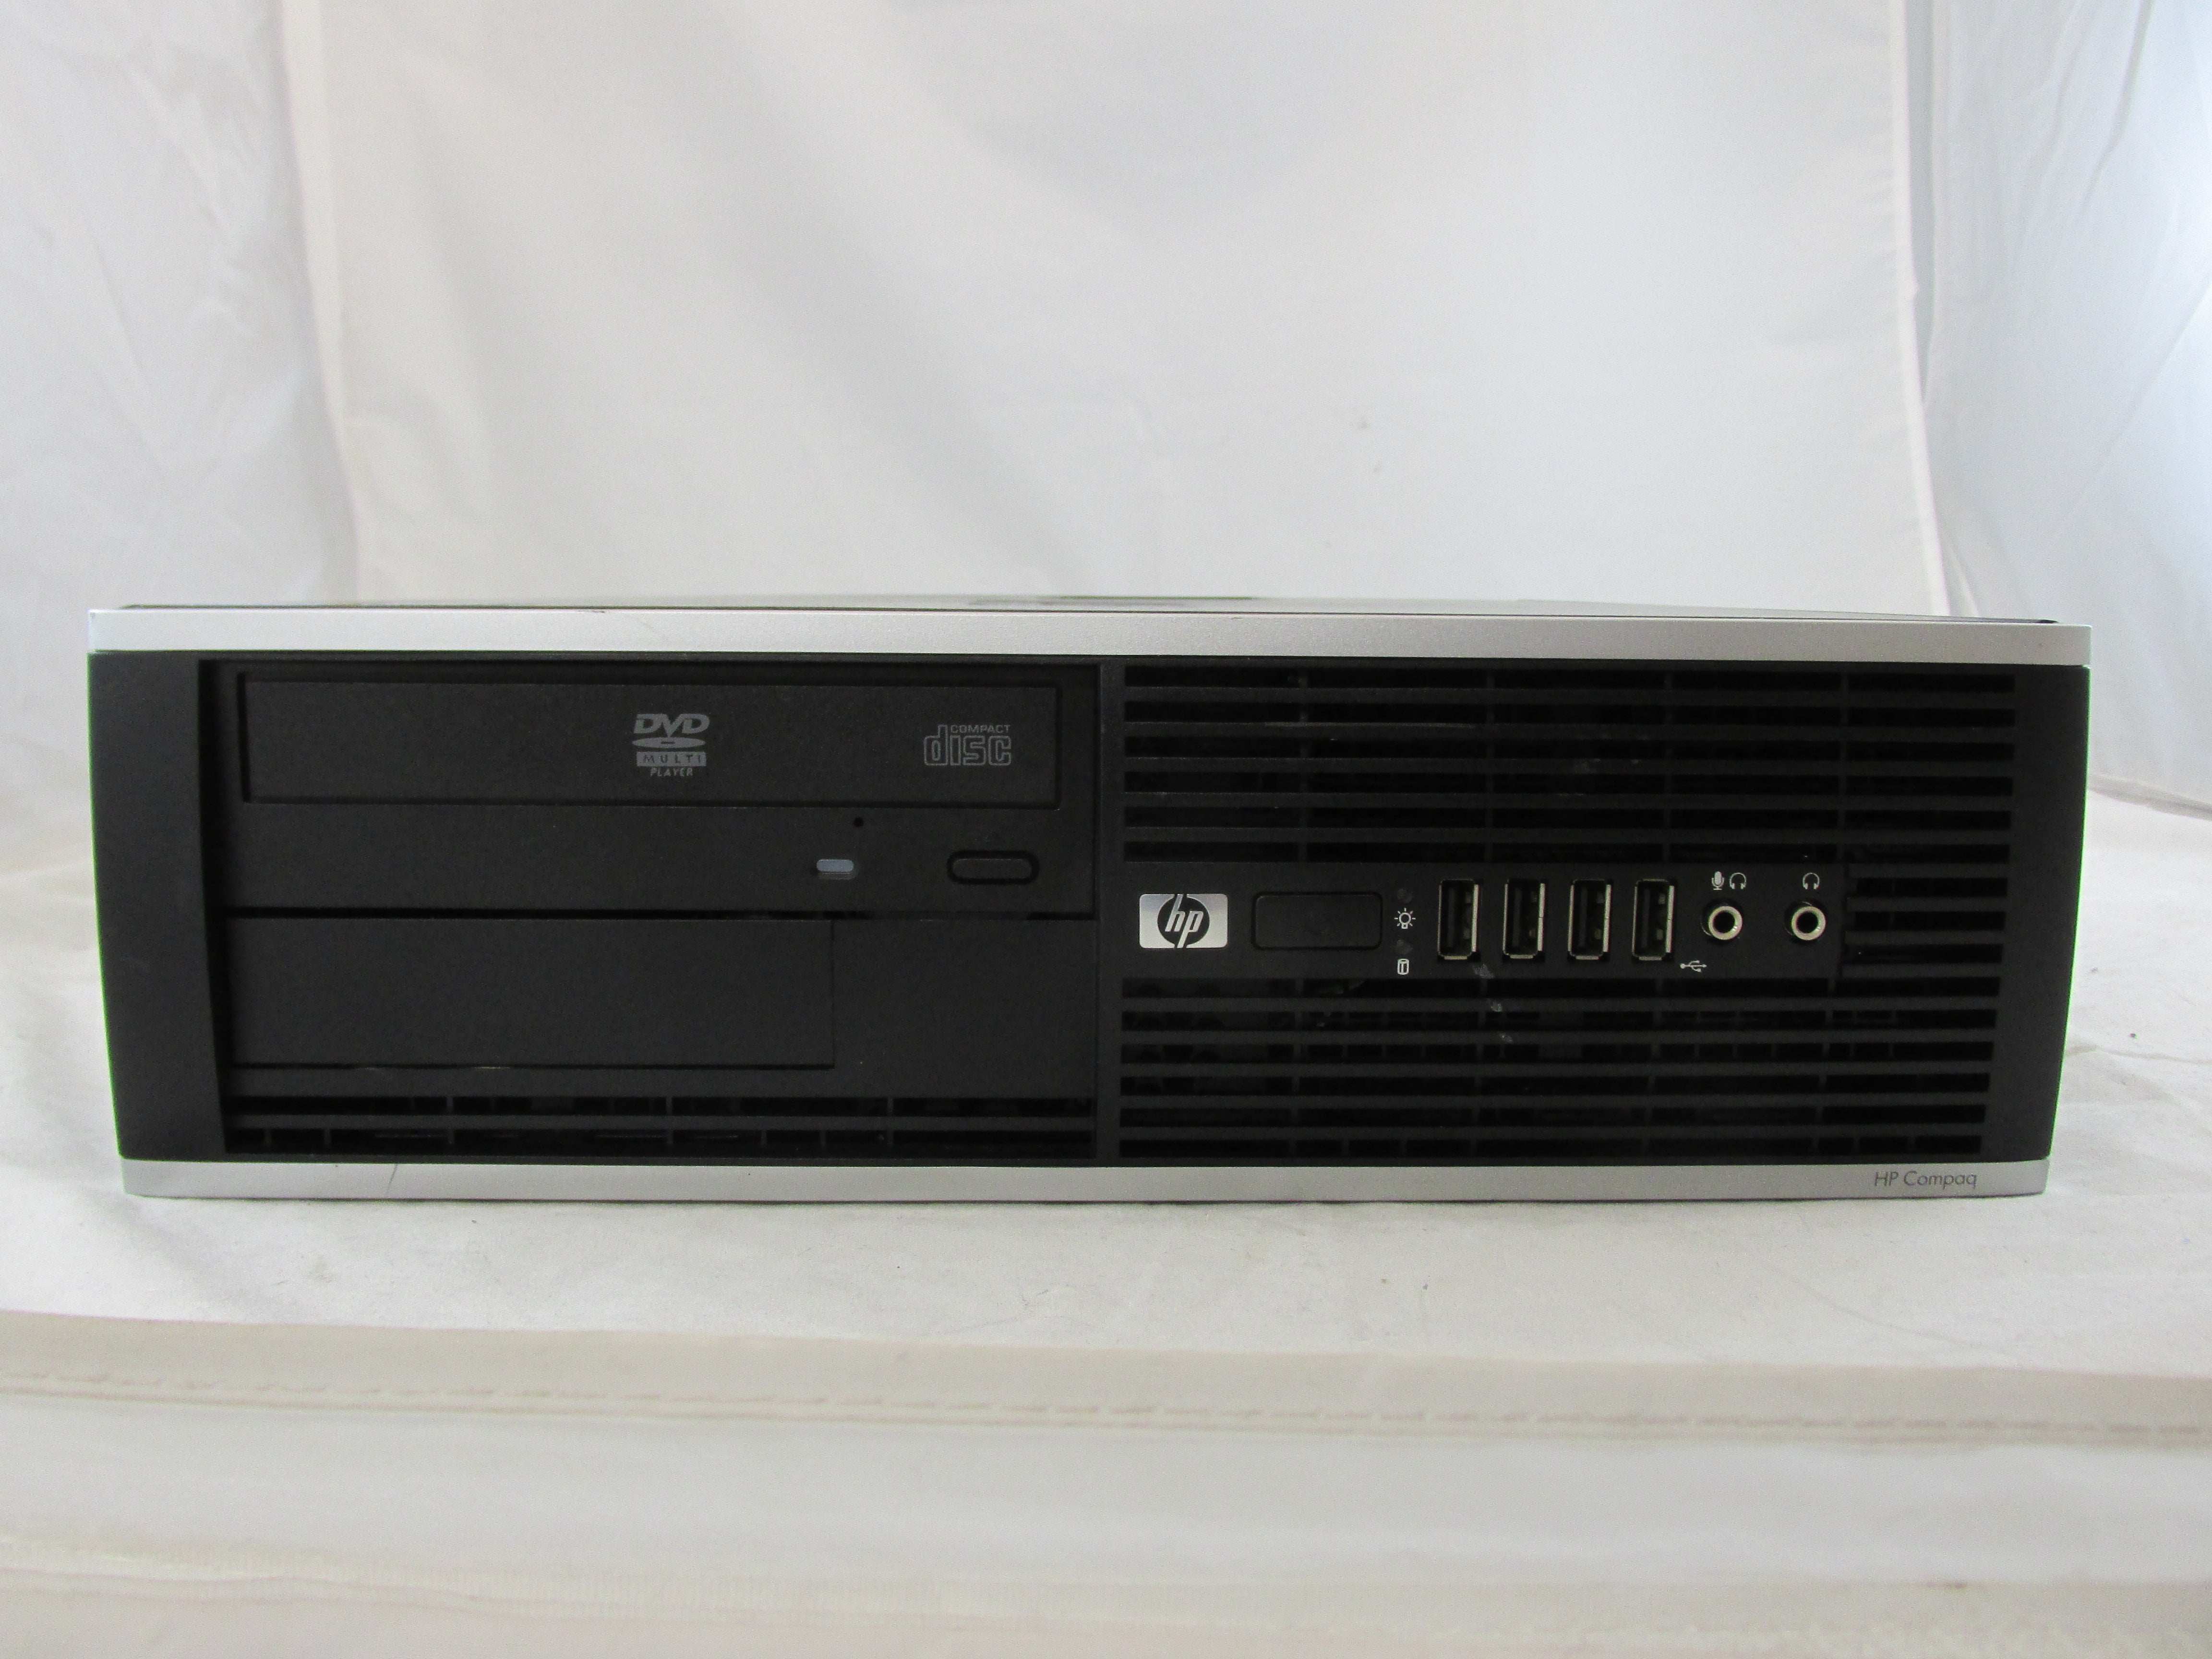 HP Compaq 8100 Elite SFF Intel Core i5-650 Processor 3.20GHz 4GB RAM 250GB HDD Windows 10 AY032AV